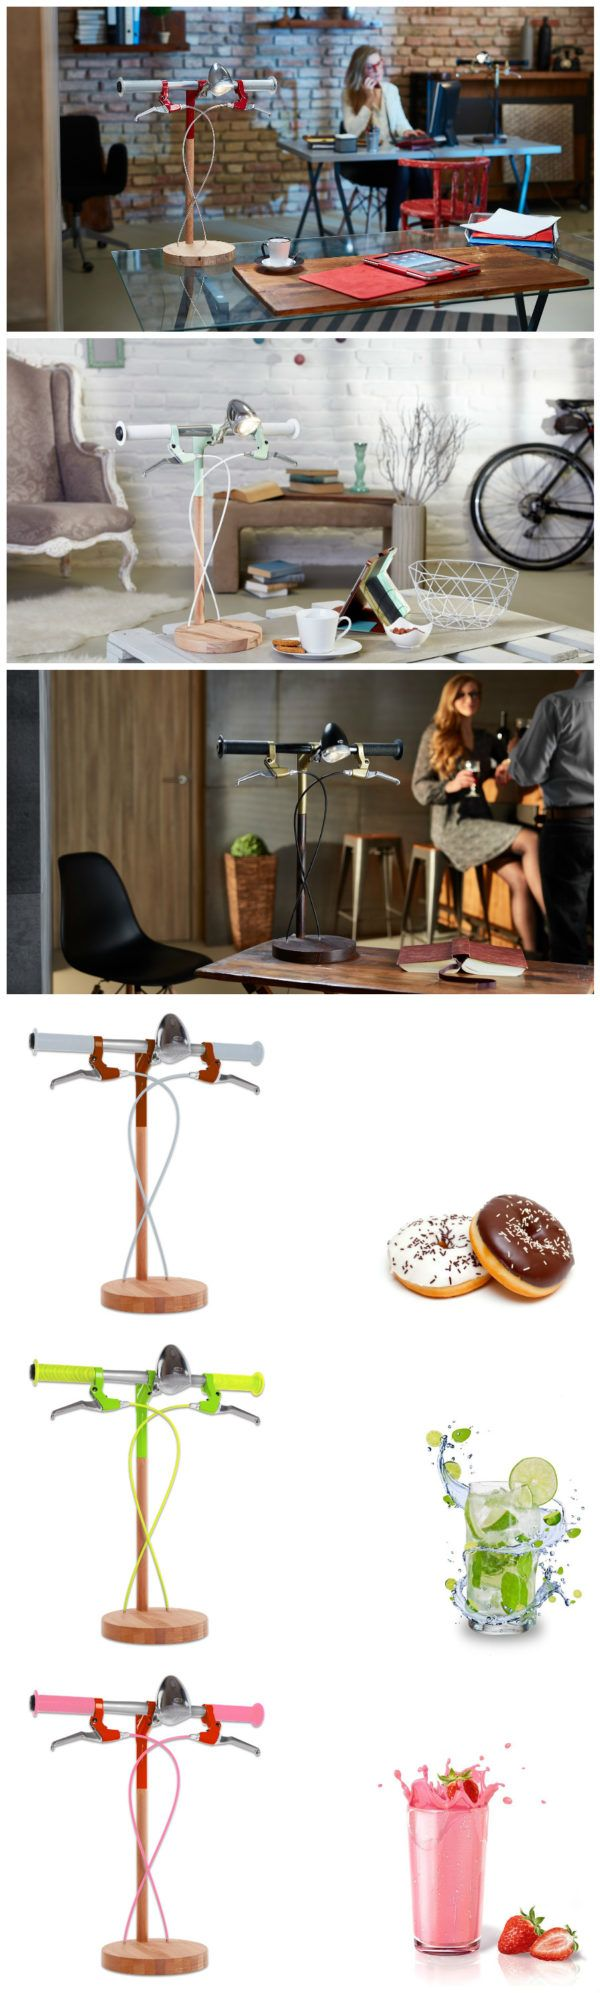 bike, desk lamp, lamps Industrial Kid's bicycle-inspired, contemporary design lamps offer the customers the freedom of choice by participating in the creative process. Desk lamps made from bicycle parts combined with the soft touch of wood create a special atmosphere at